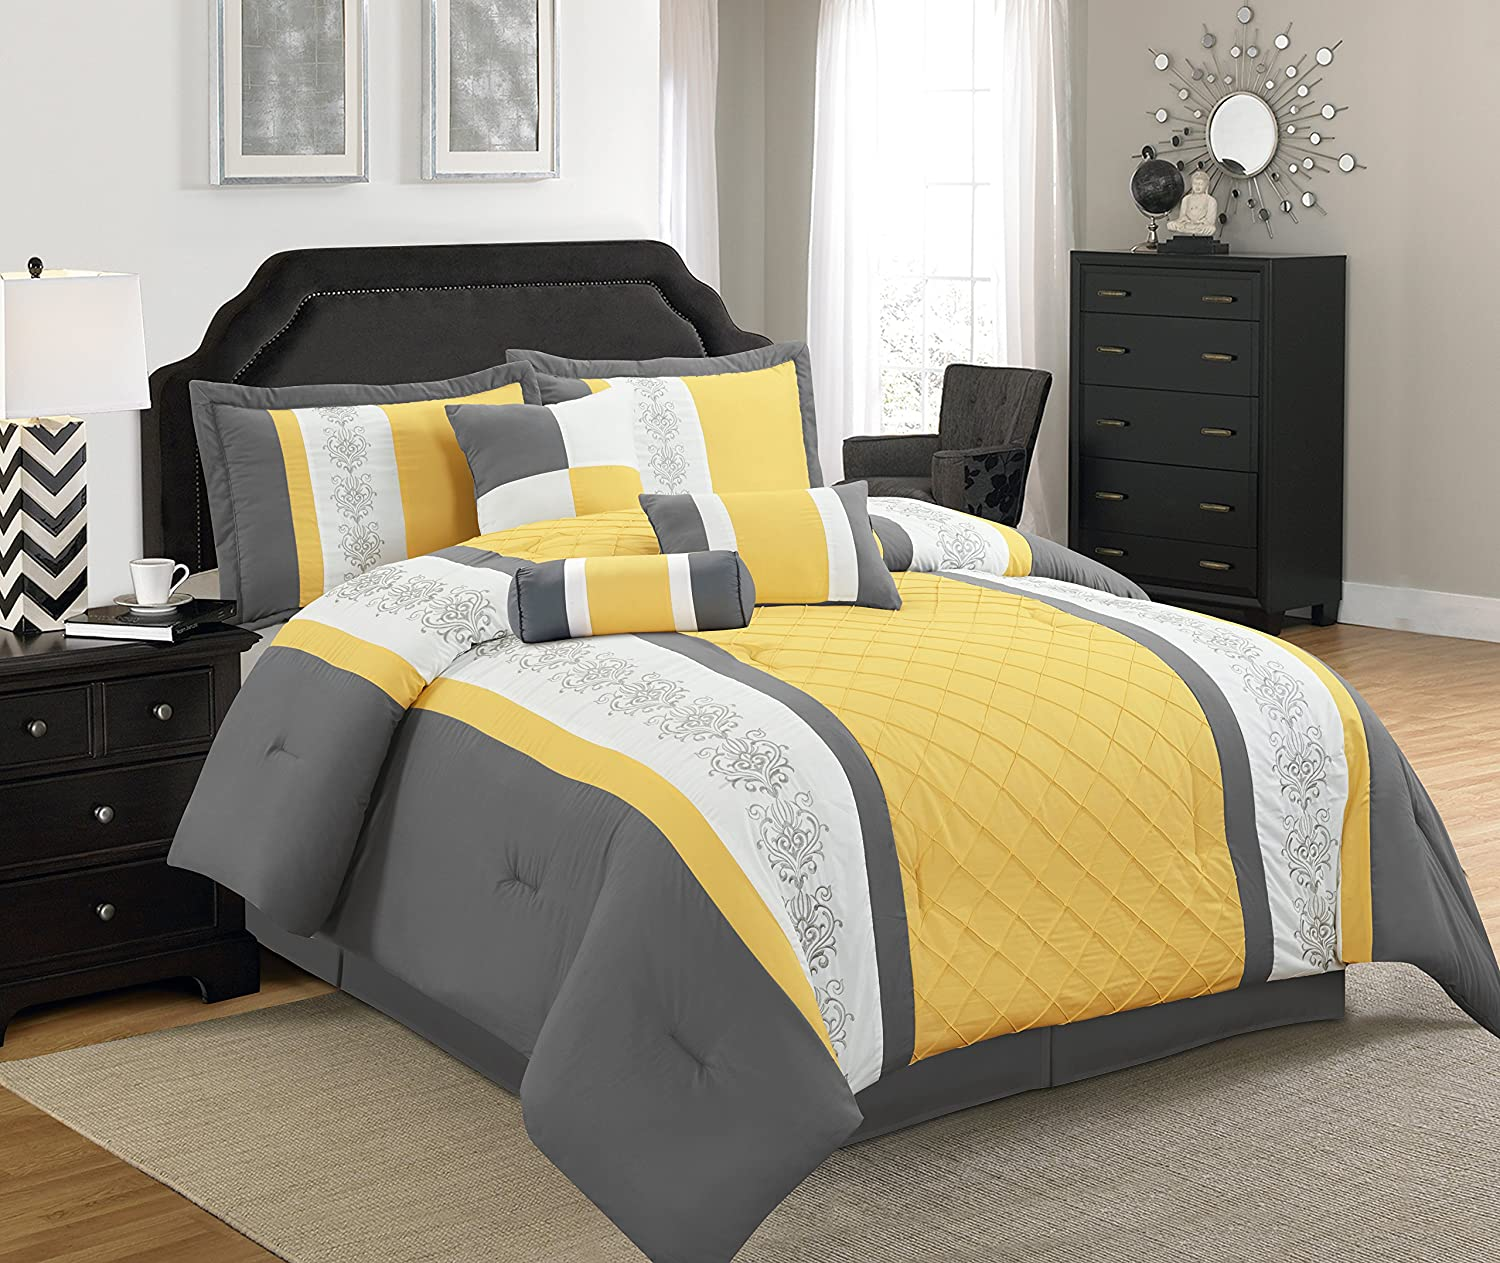 set full living of home and ideas pictures grey bedroom accents yellow pale bathroom decorating gray twin room decor size comforter